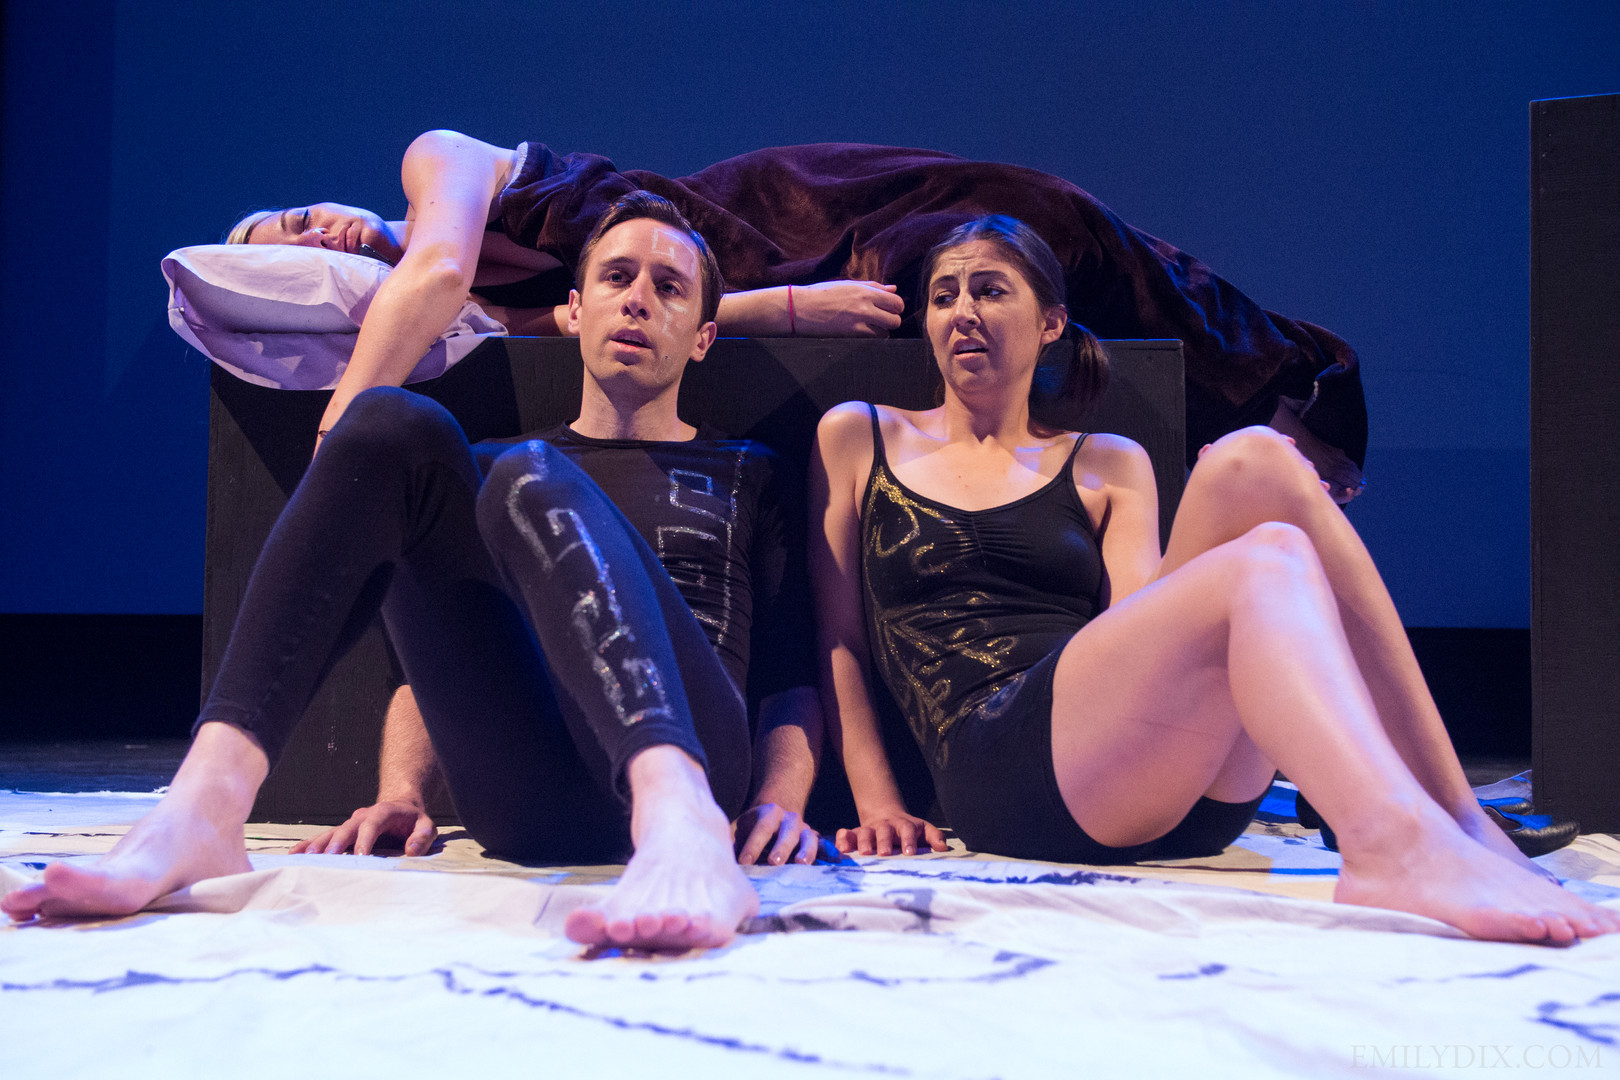 (L-R) Jonas Trottier as Left Brain and Jennifer Busuttil as Right Brain. Photo by Emily Dix.